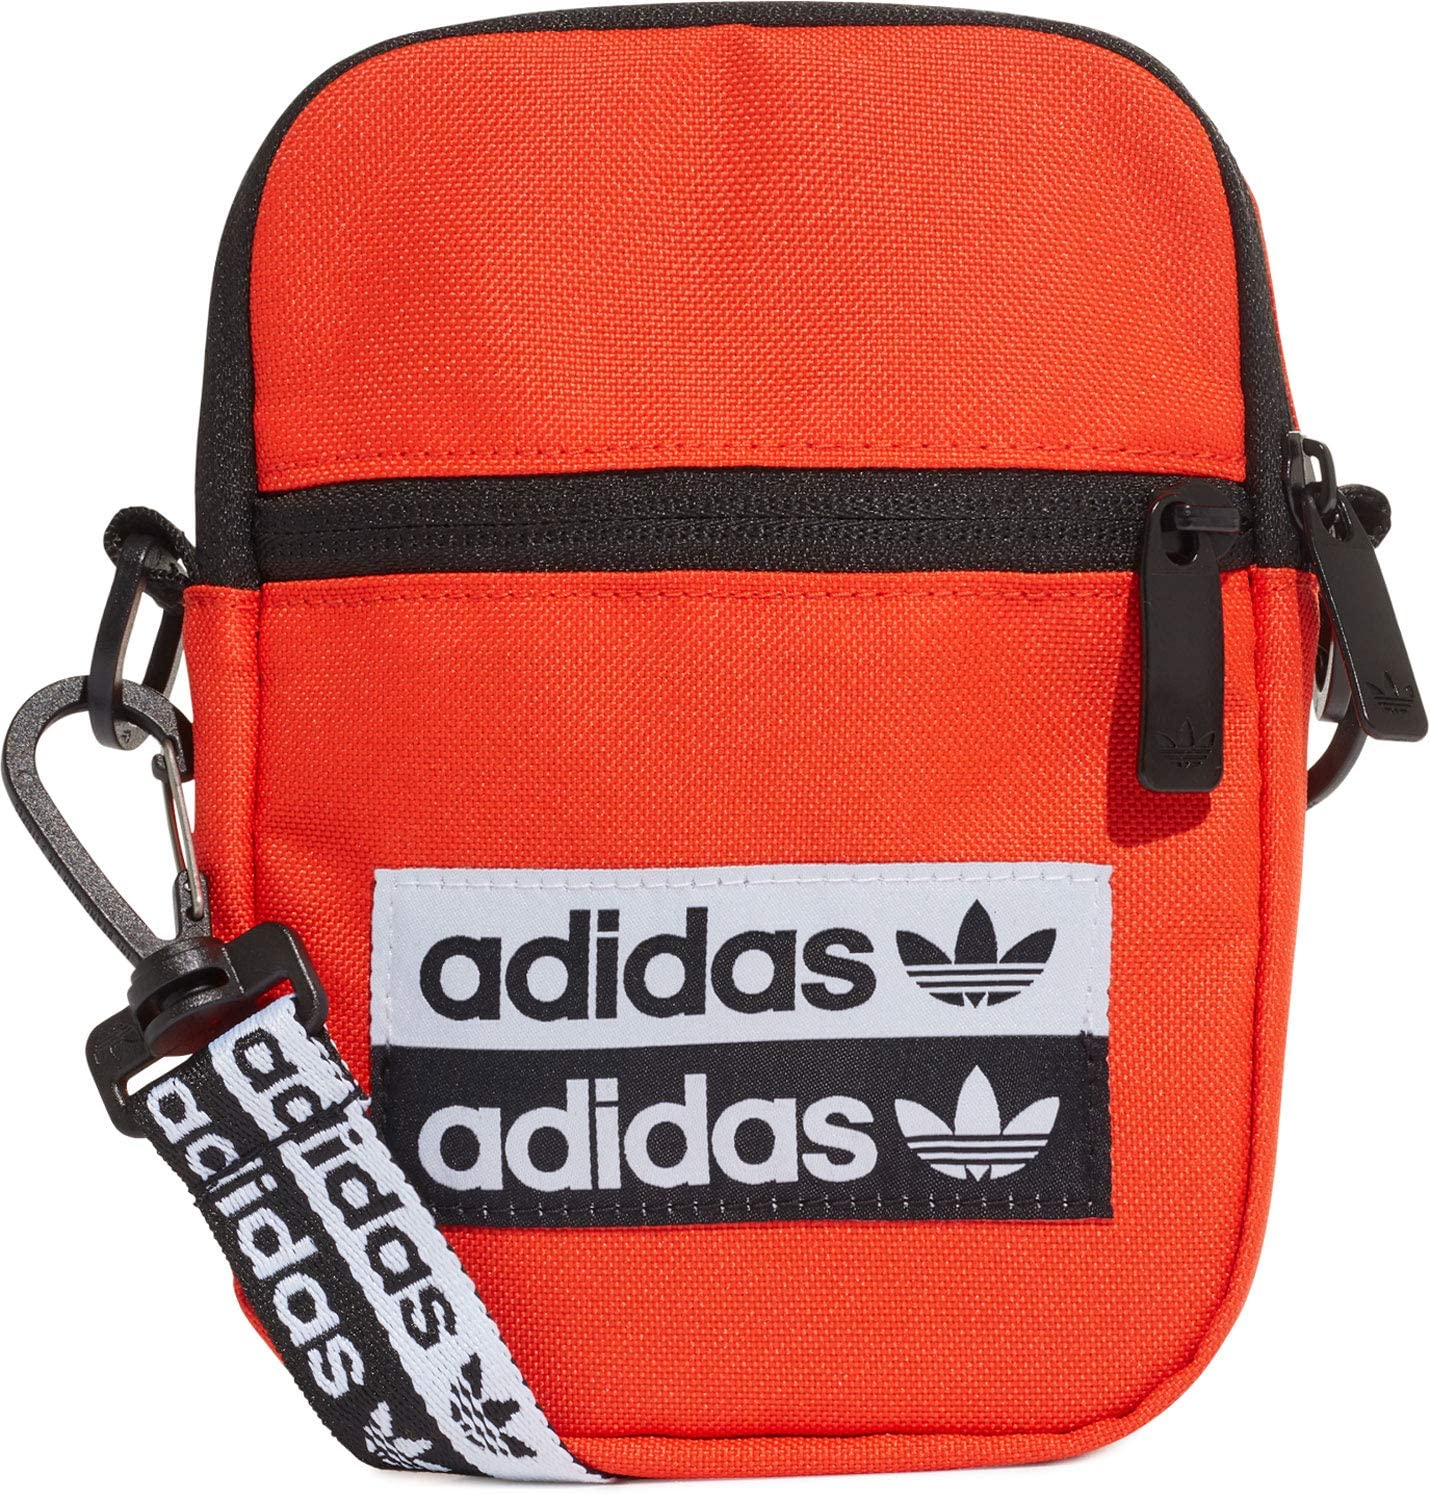 adidas bolsita, Orange: Amazon.es: Equipaje